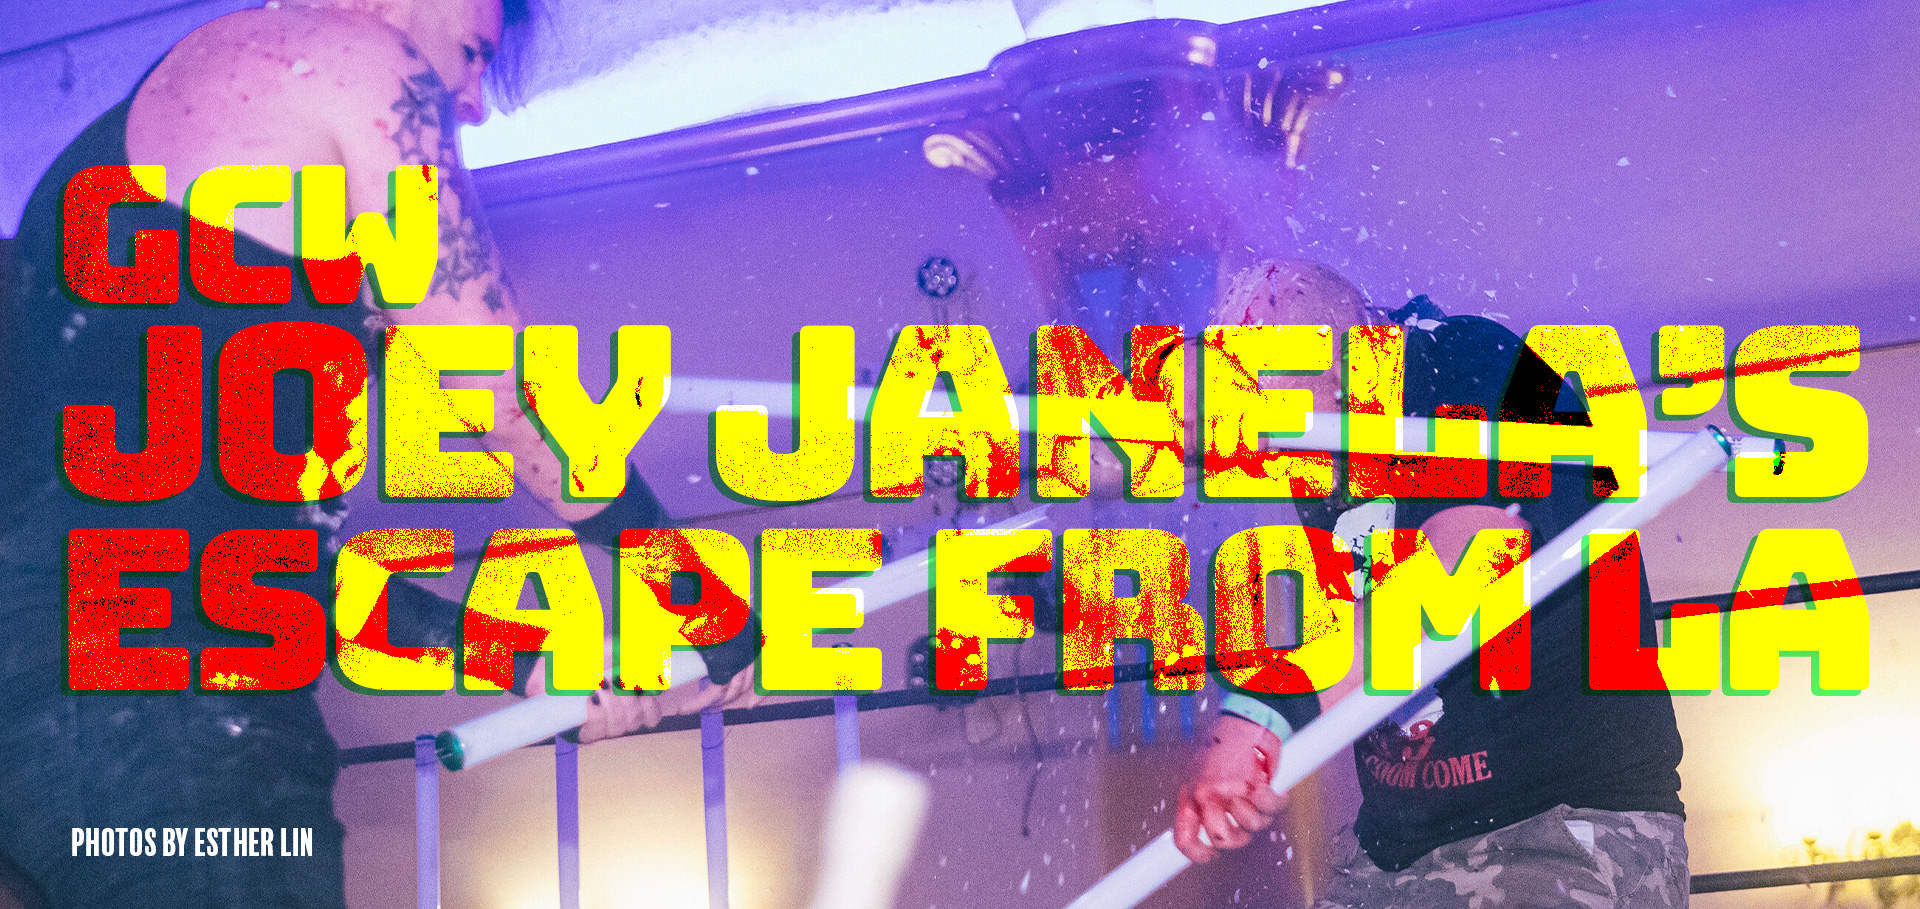 Joey Janela's Escape from LA